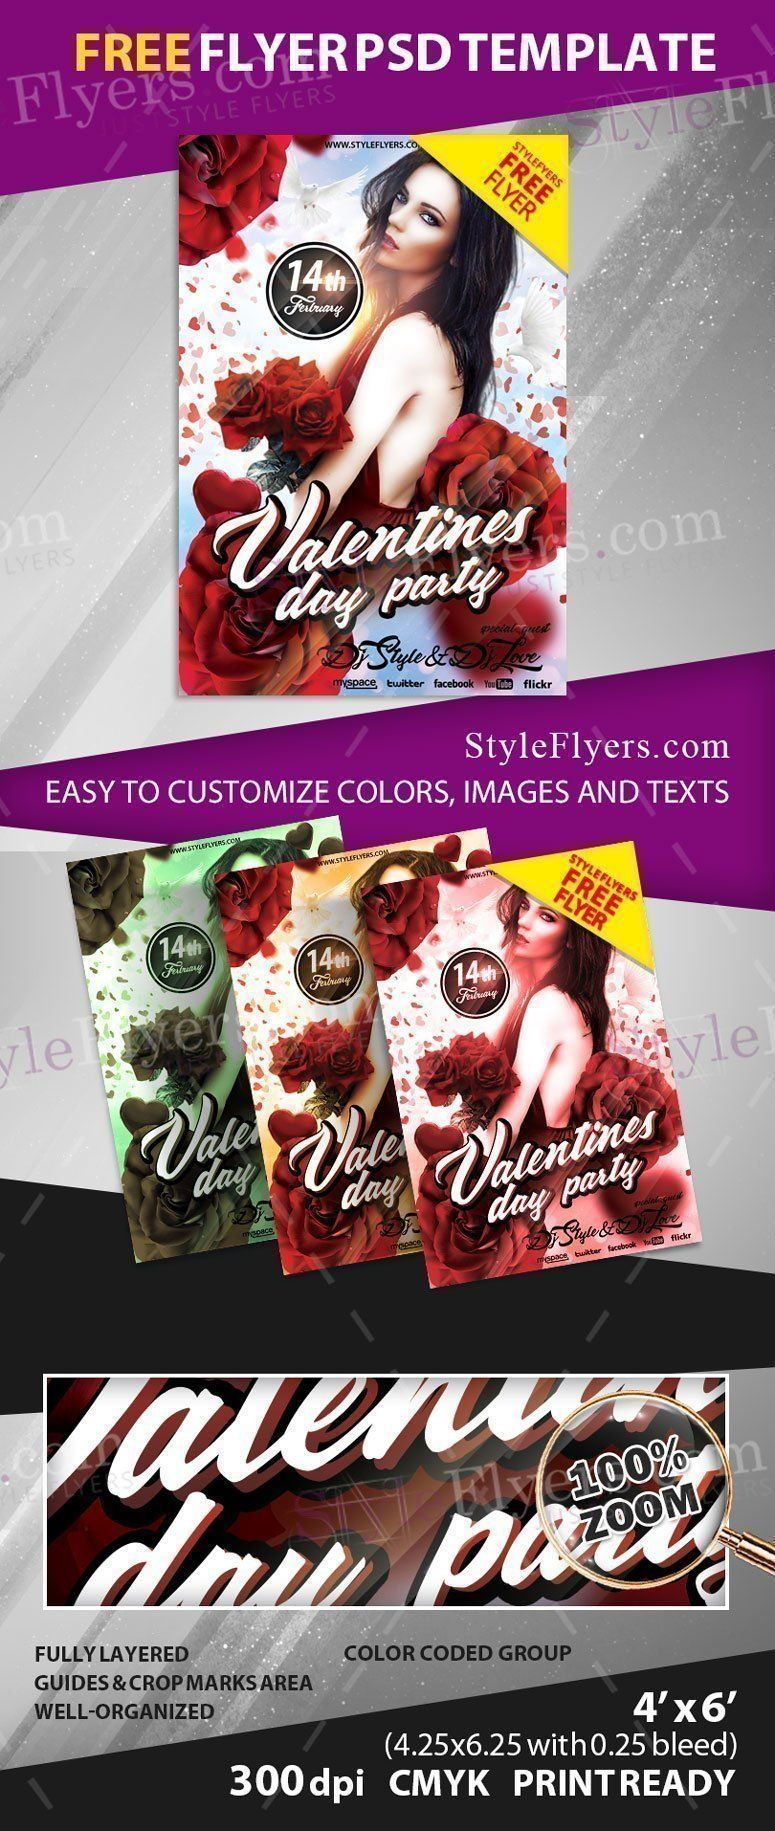 Valentine's Day FREE PSD Flyer Template Free Download 22552